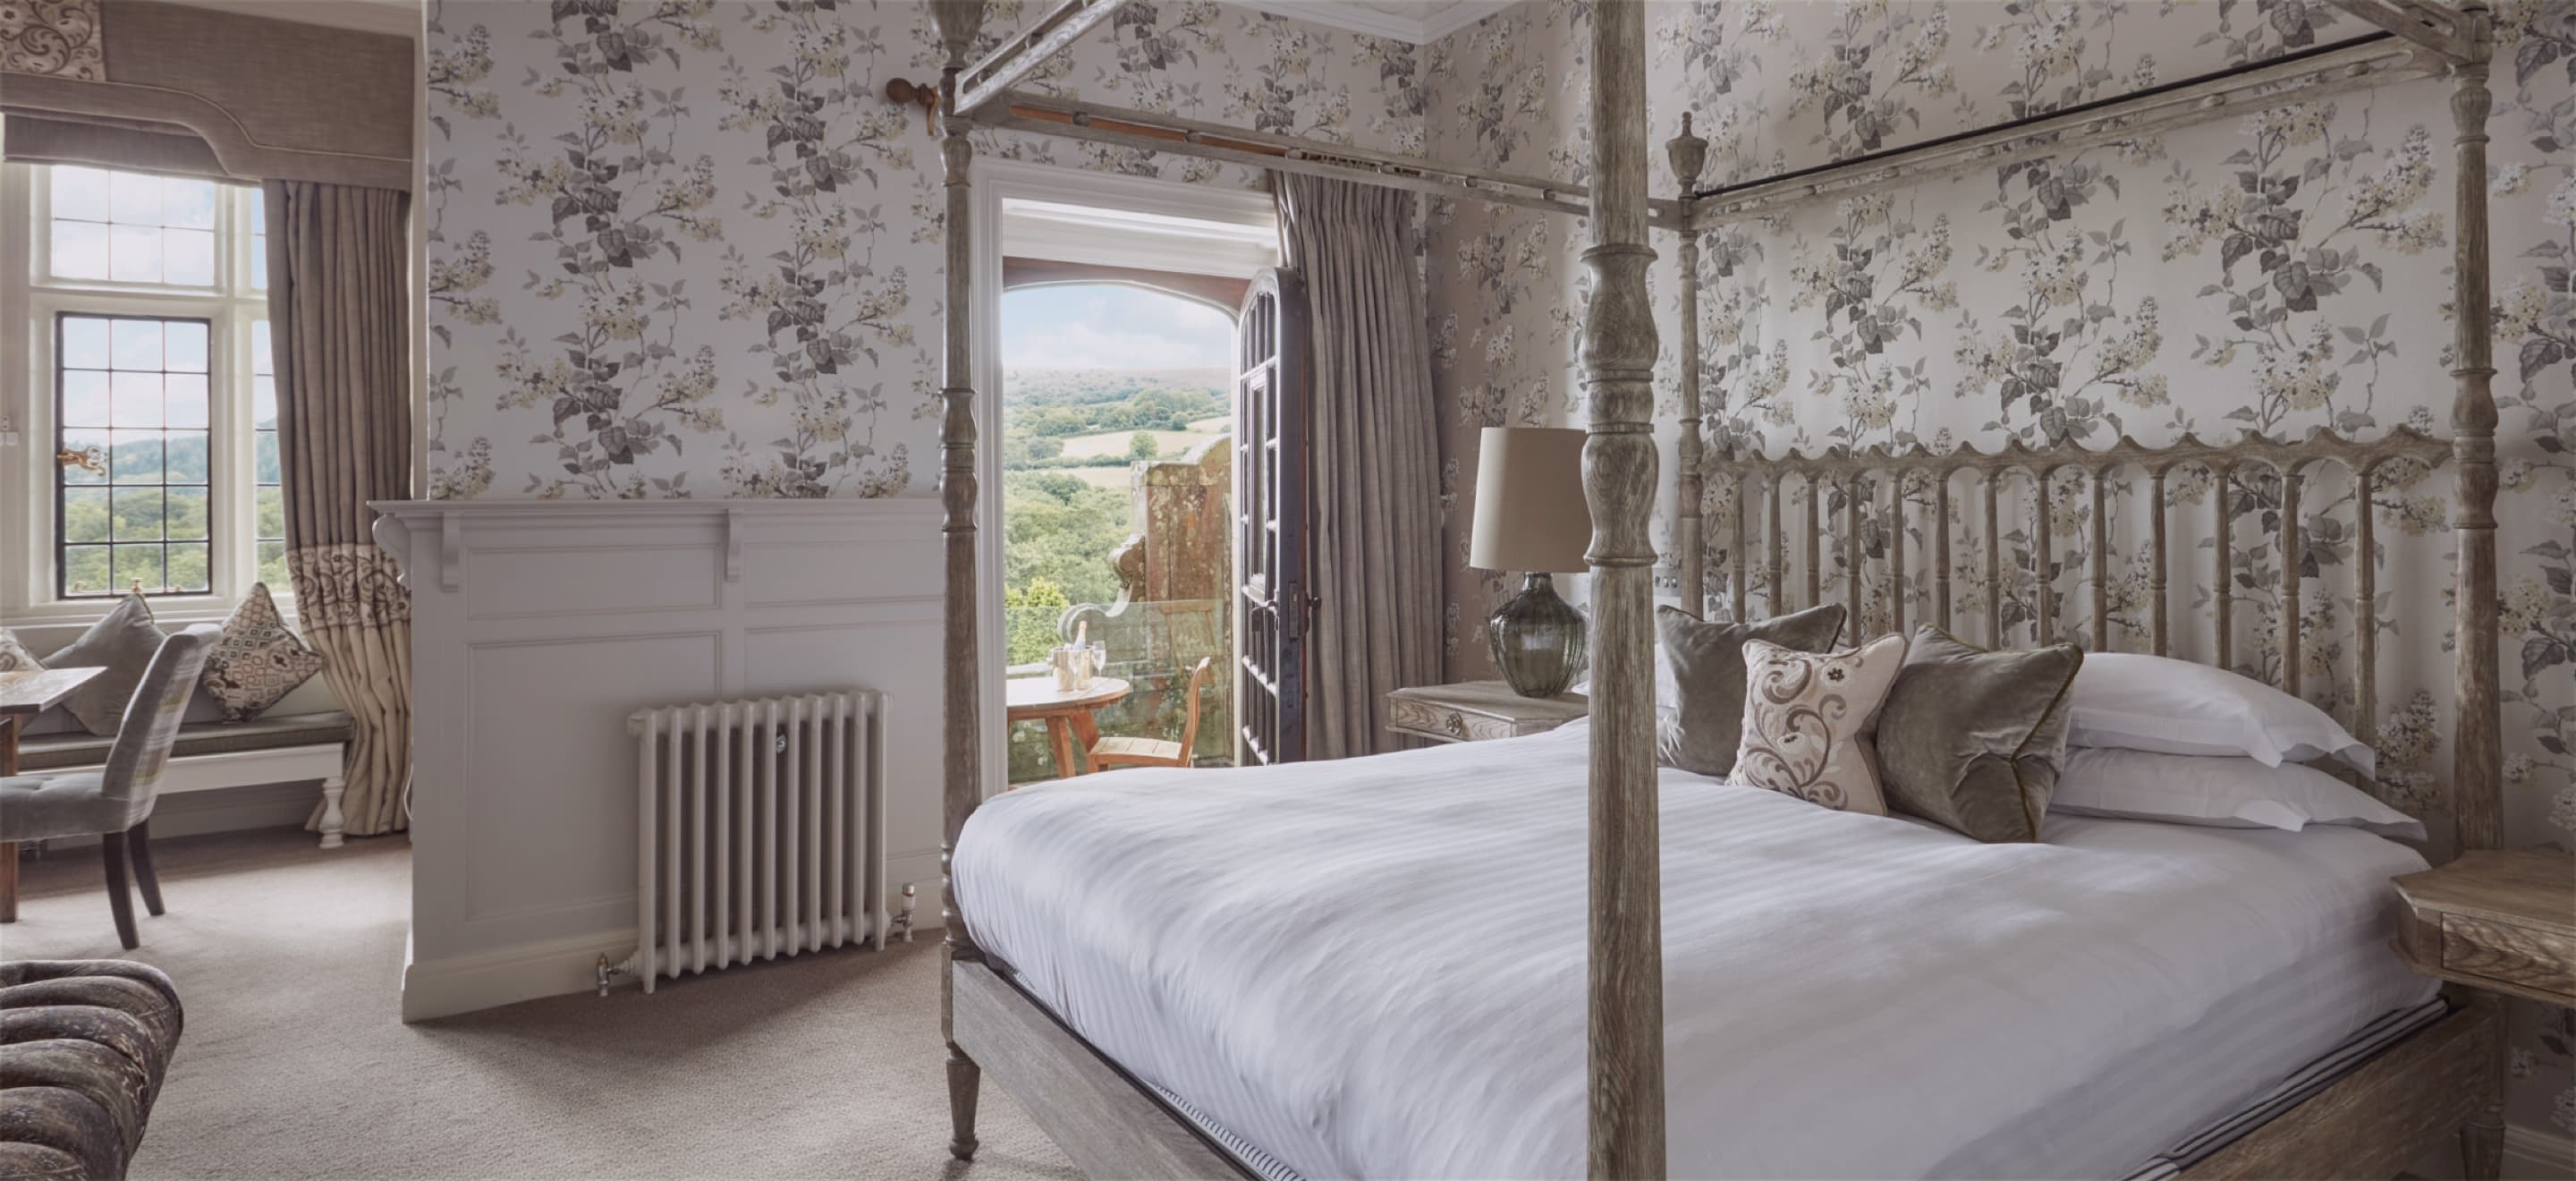 News The Ultimate Bovey Castle Experience 02